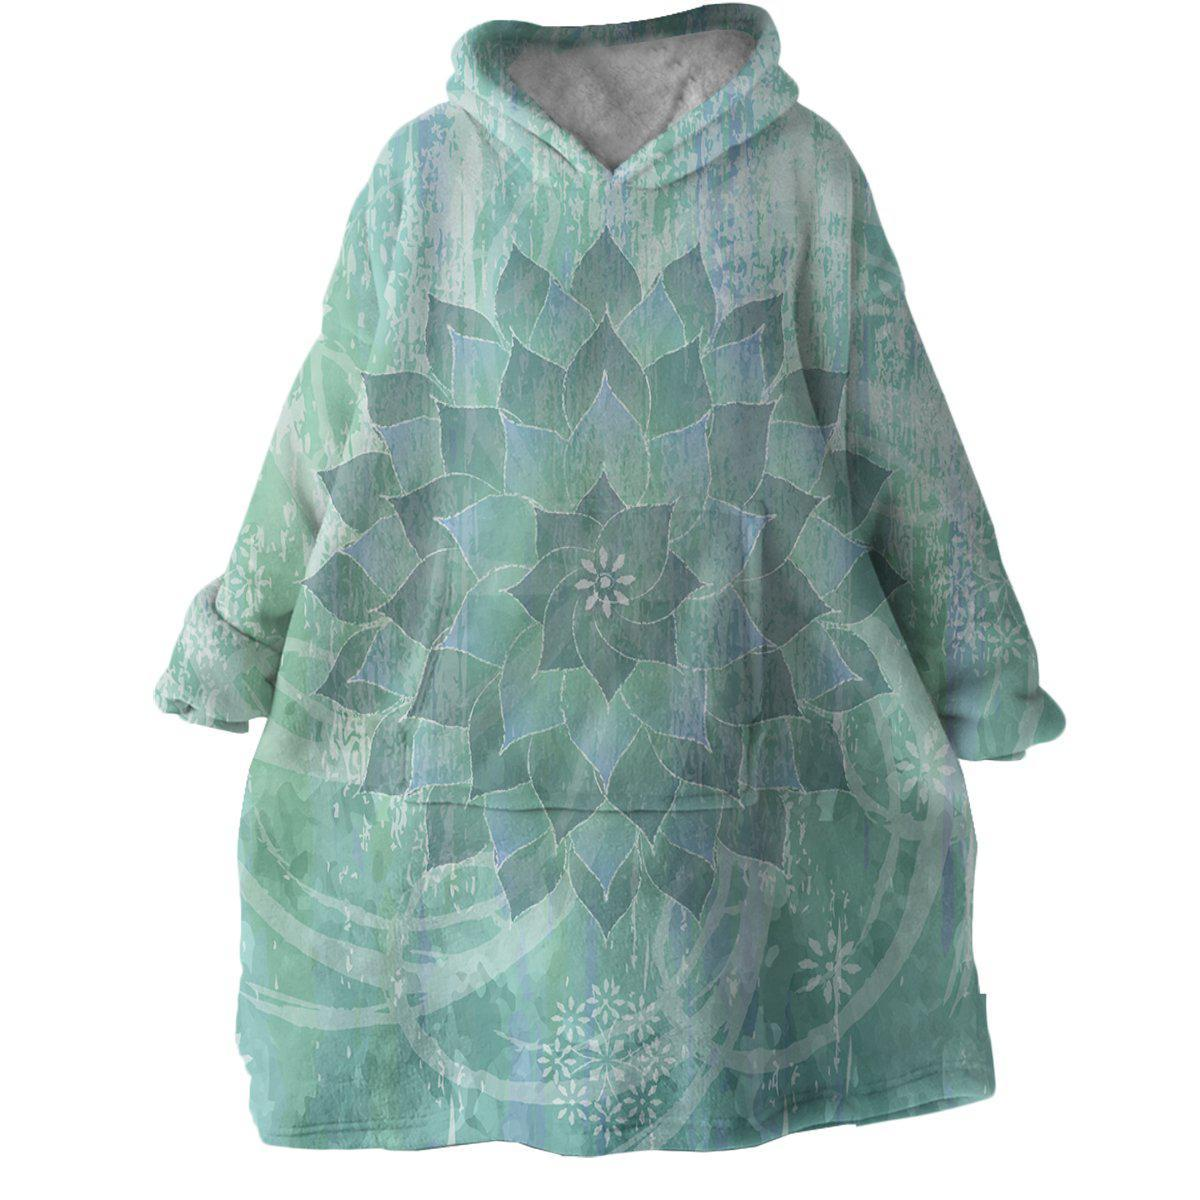 The Ocean Hues Wearable Blanket Hoodie-Coastal Passion